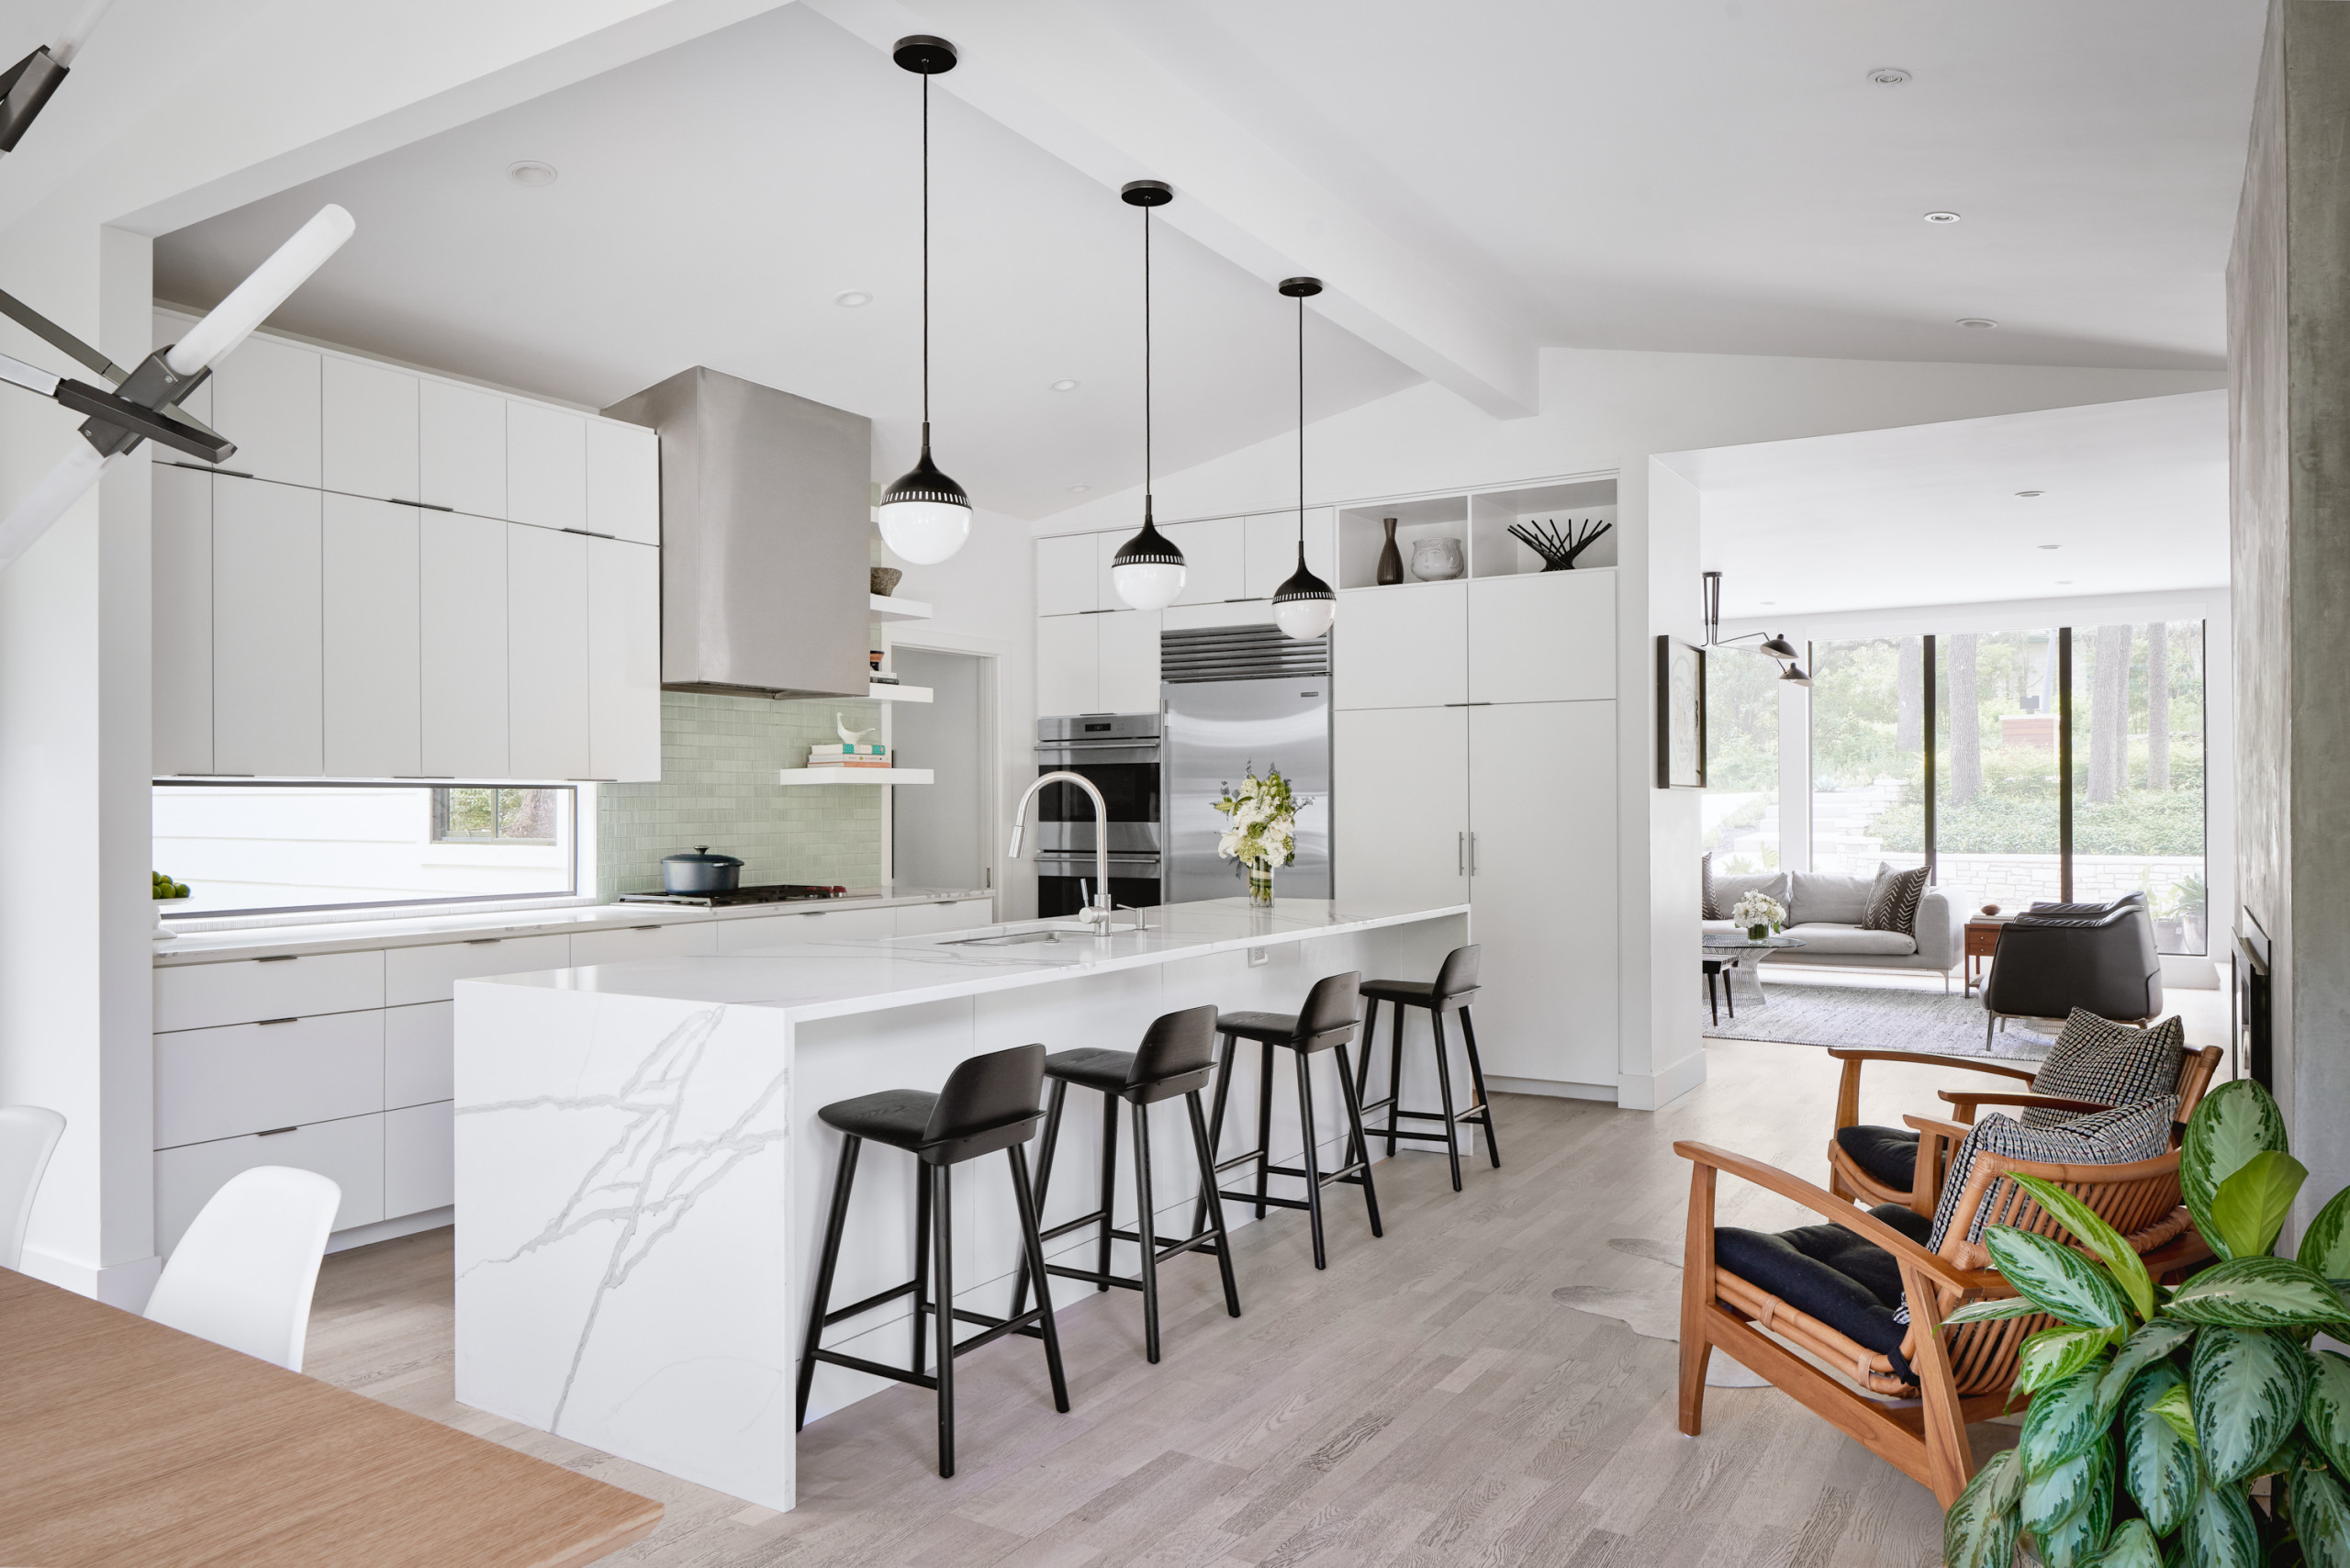 75 Beautiful Vaulted Ceiling Kitchen Pictures Ideas February 2021 Houzz